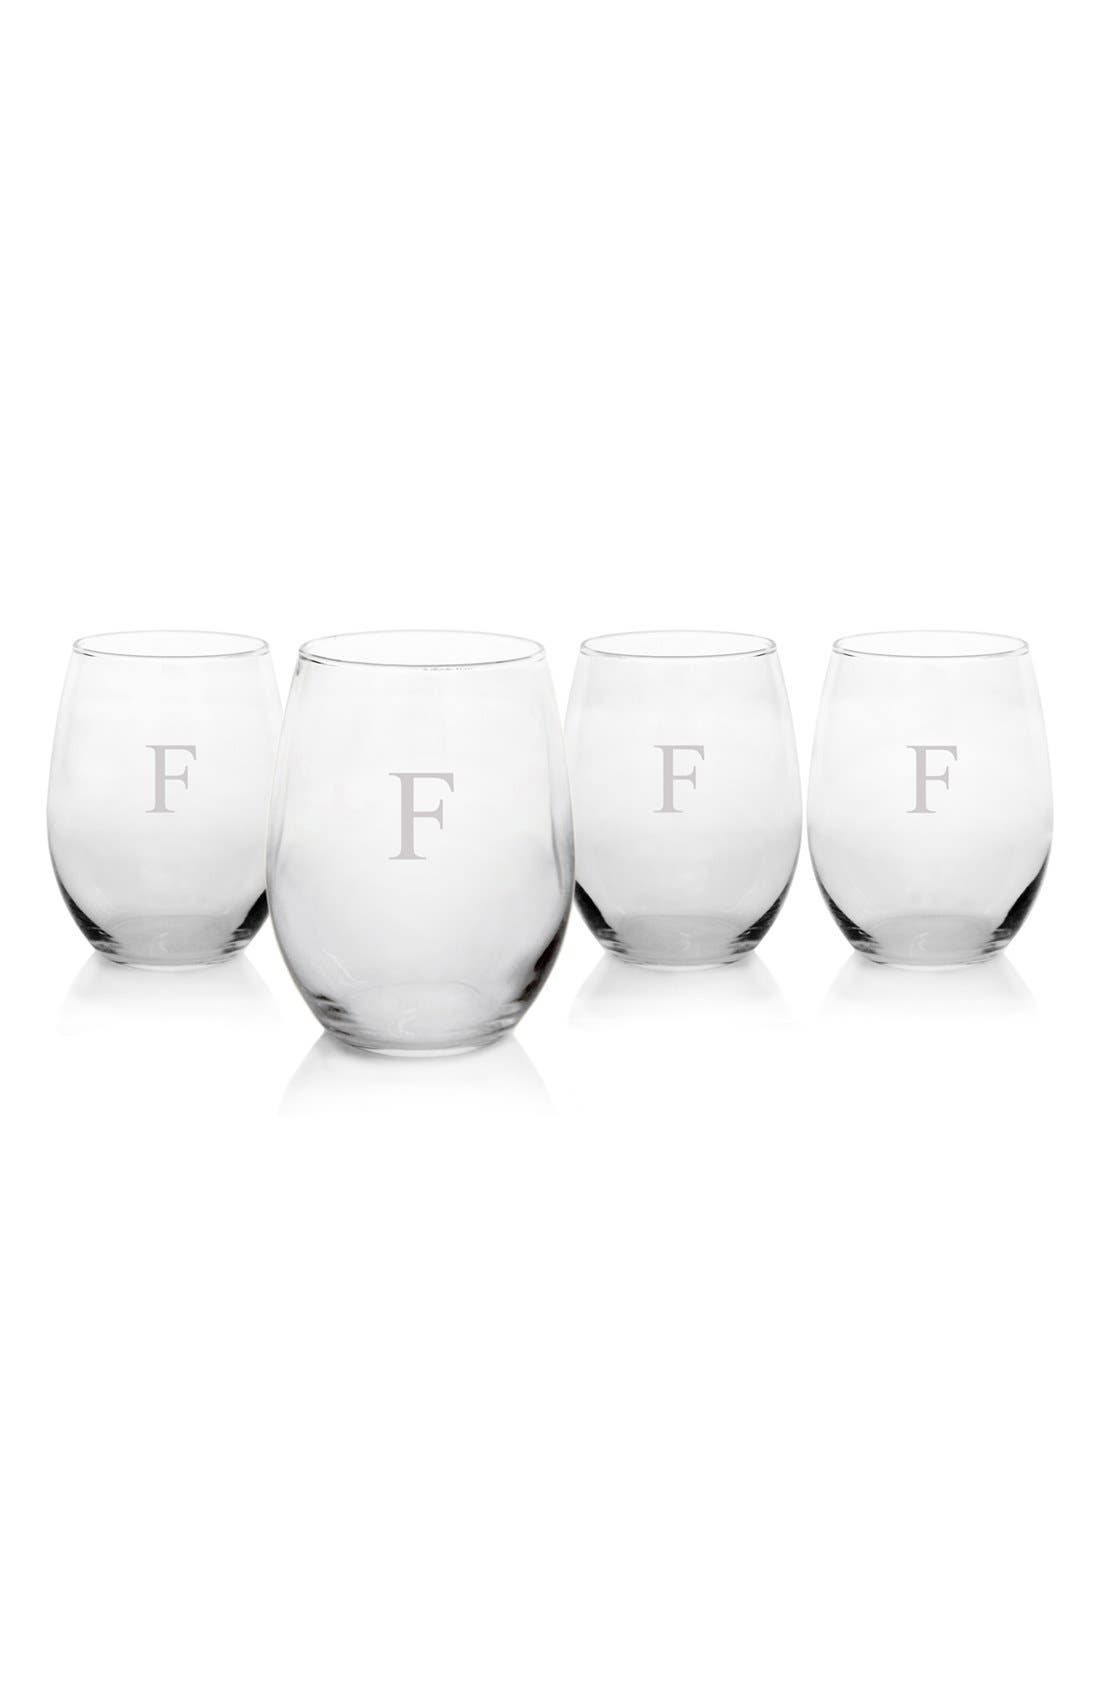 Monogram Set of 4 Stemless Wine Glasses,                         Main,                         color, Clear-F